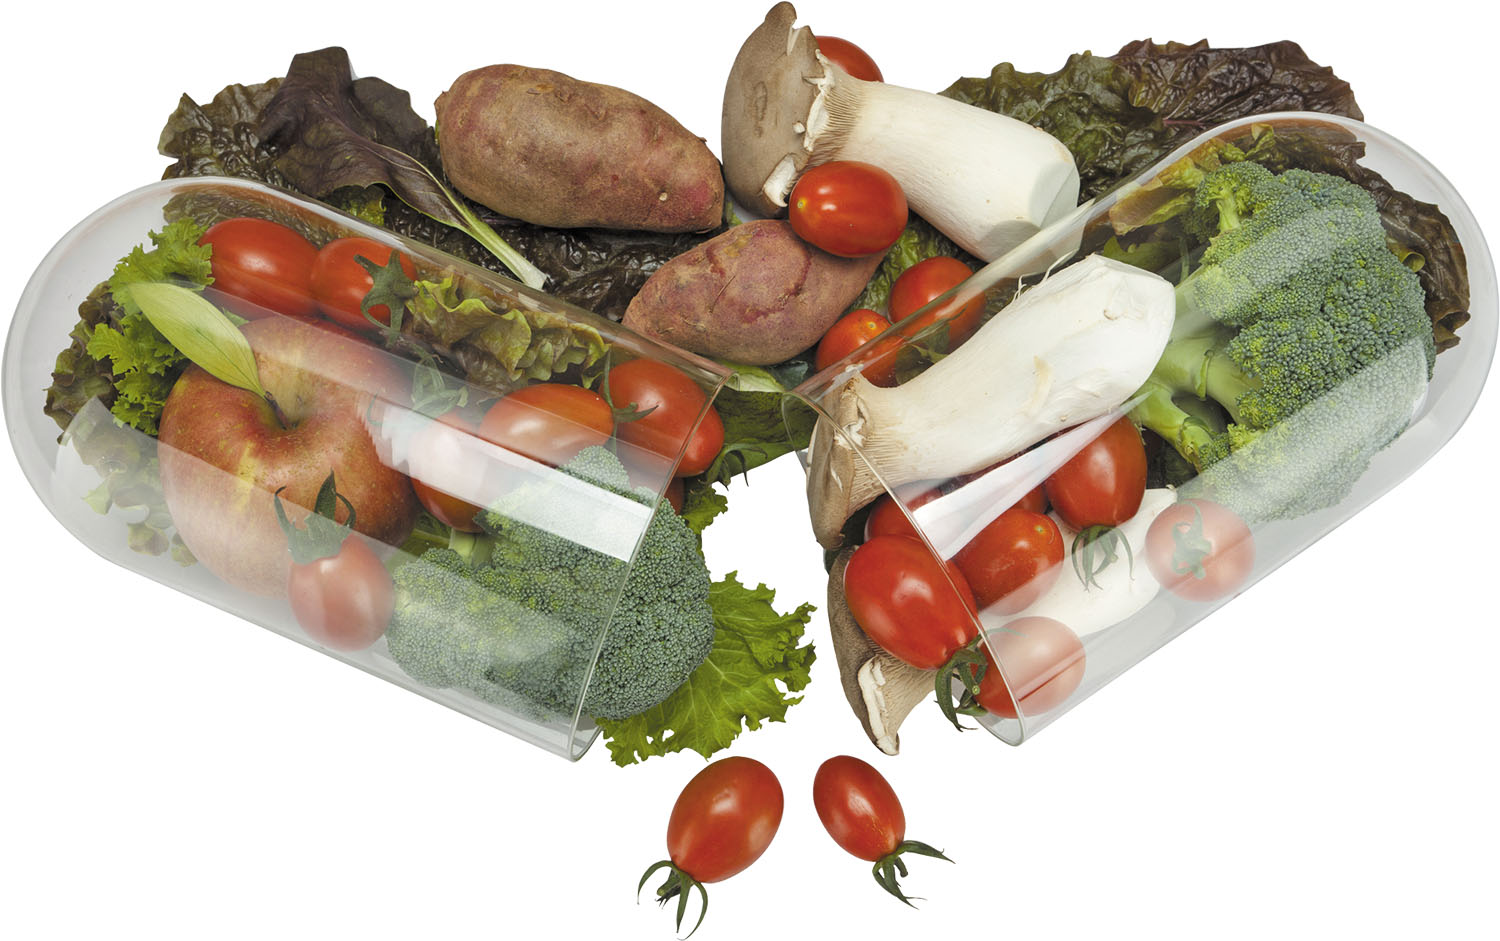 Do you need a daily supplement?